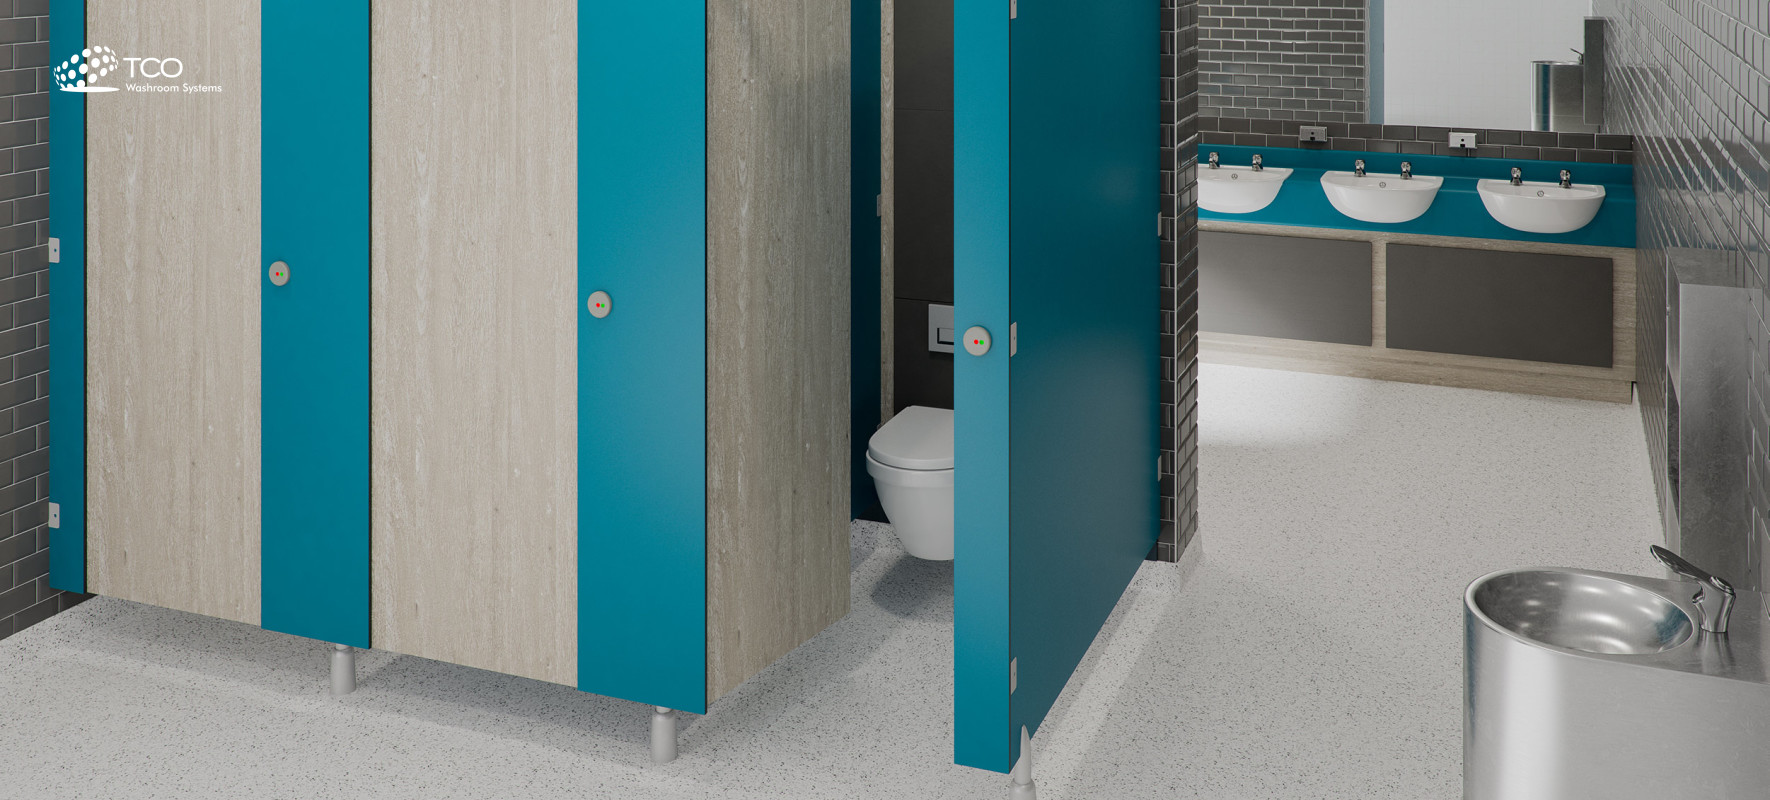 Toilet Cubicles Online | Cubicle Systems & Commercial Washrooms